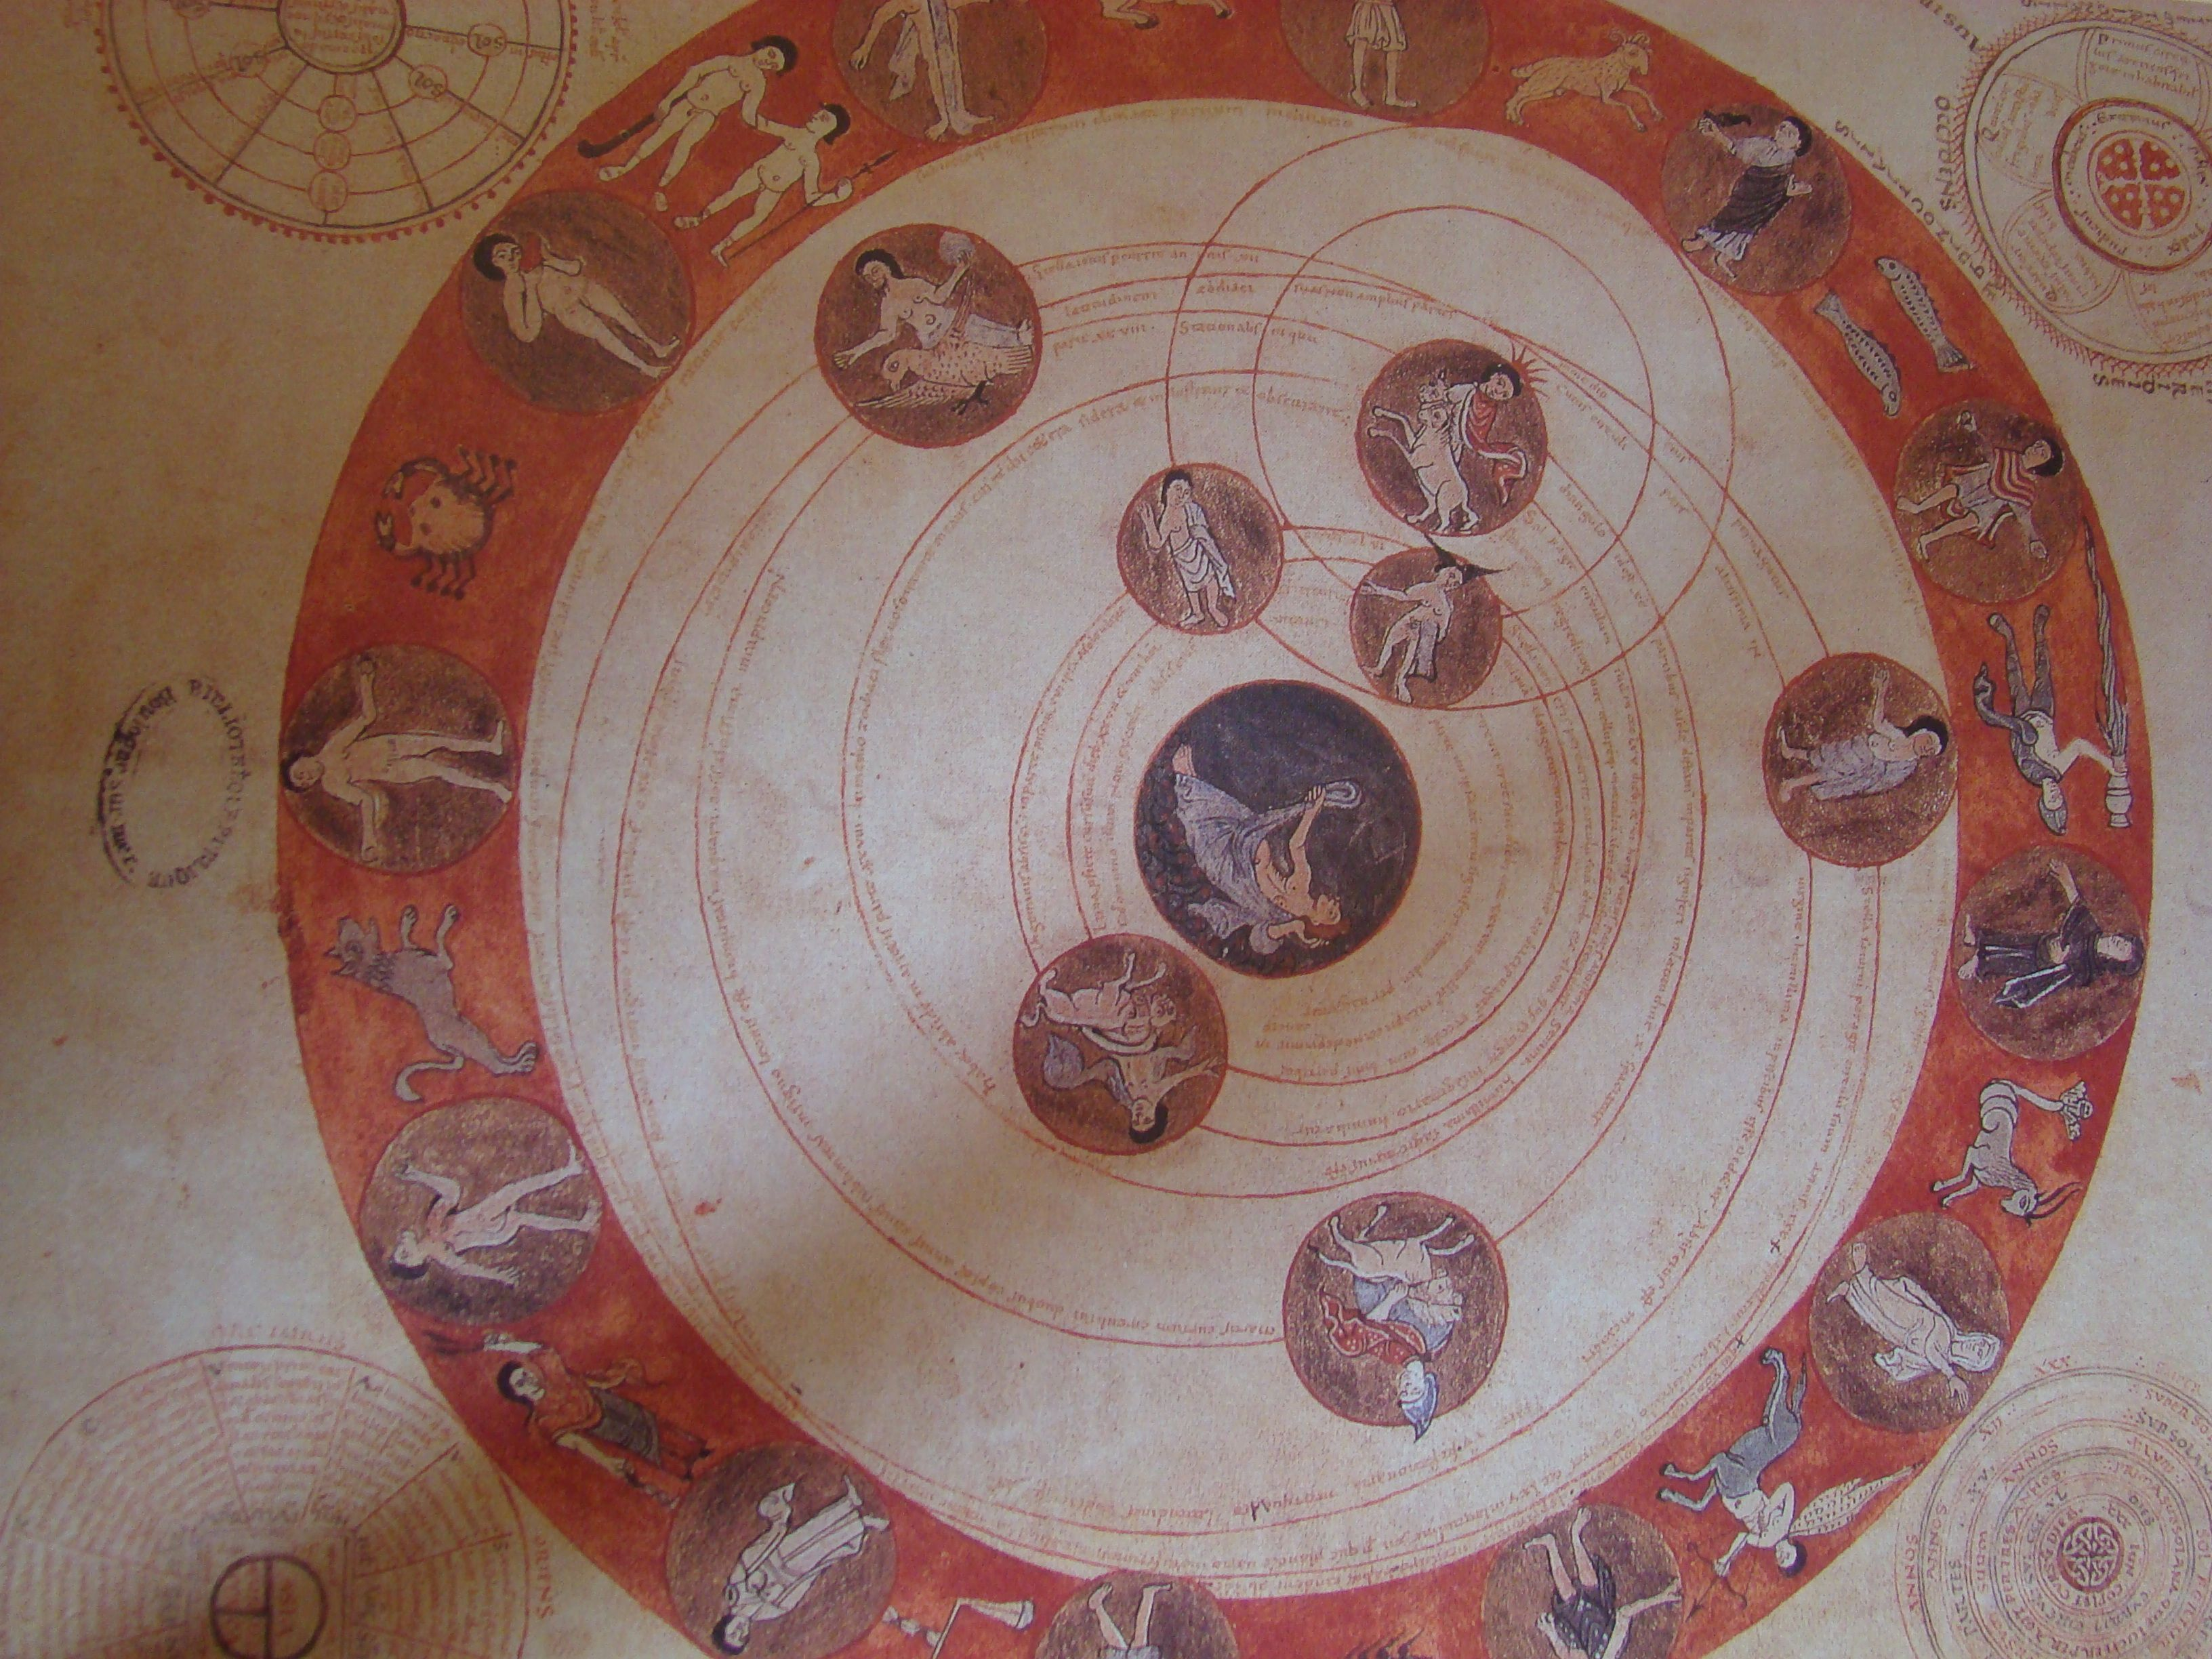 Astrological Society of CT